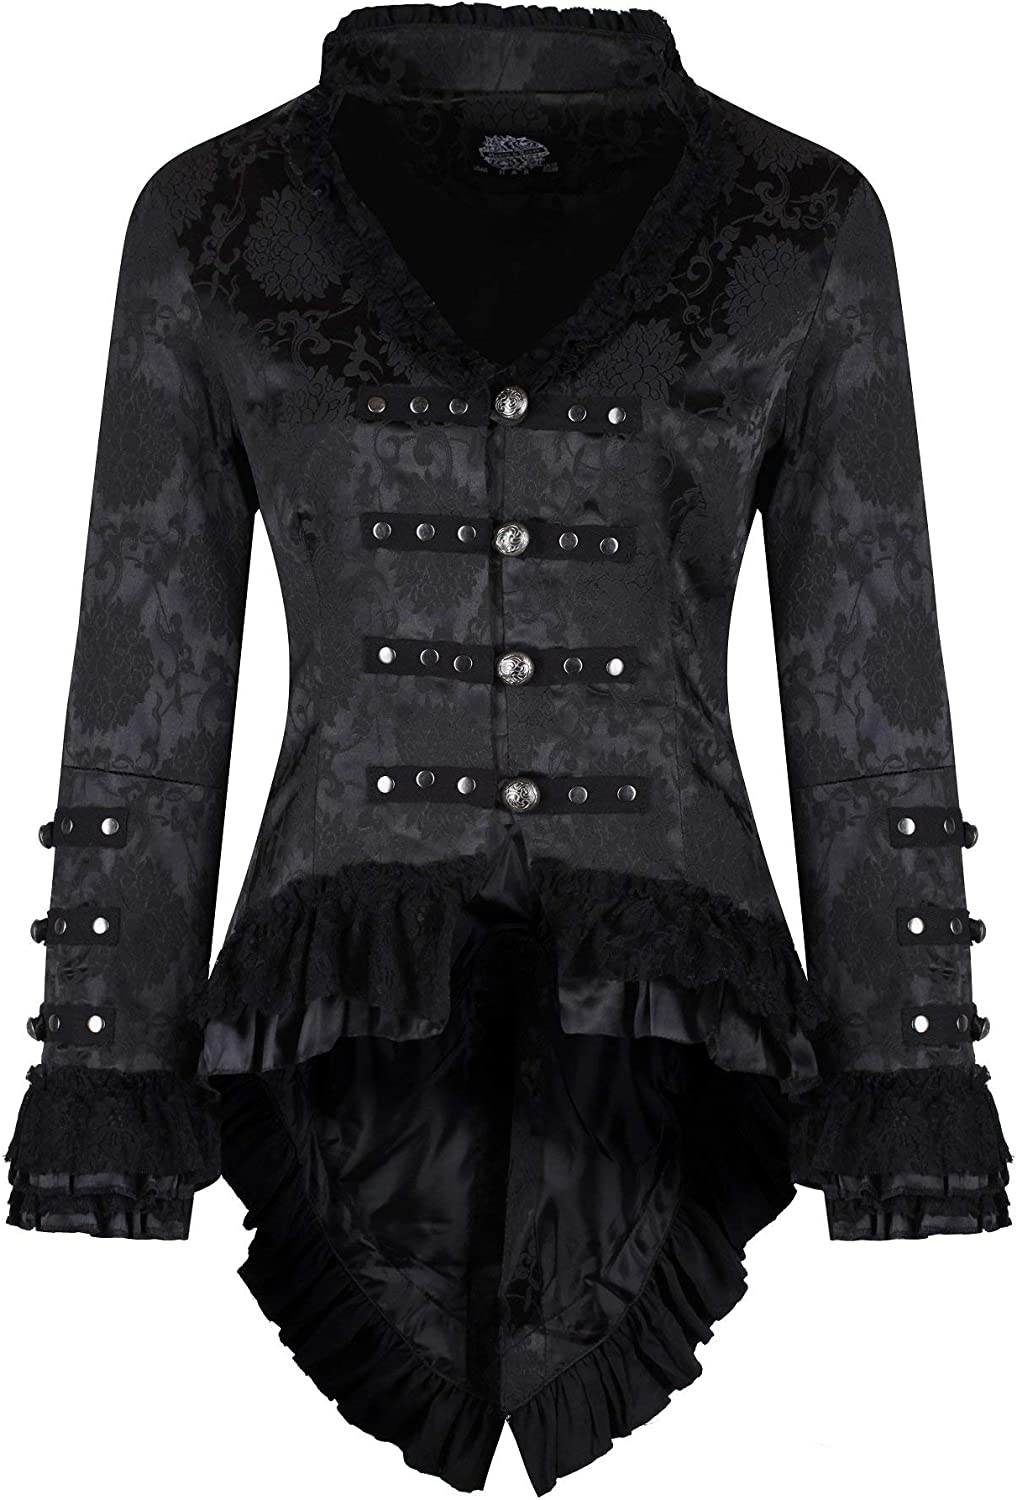 Hearts /& Roses Womens Victorian Steampunk Brocade Tailcoat Corset Back